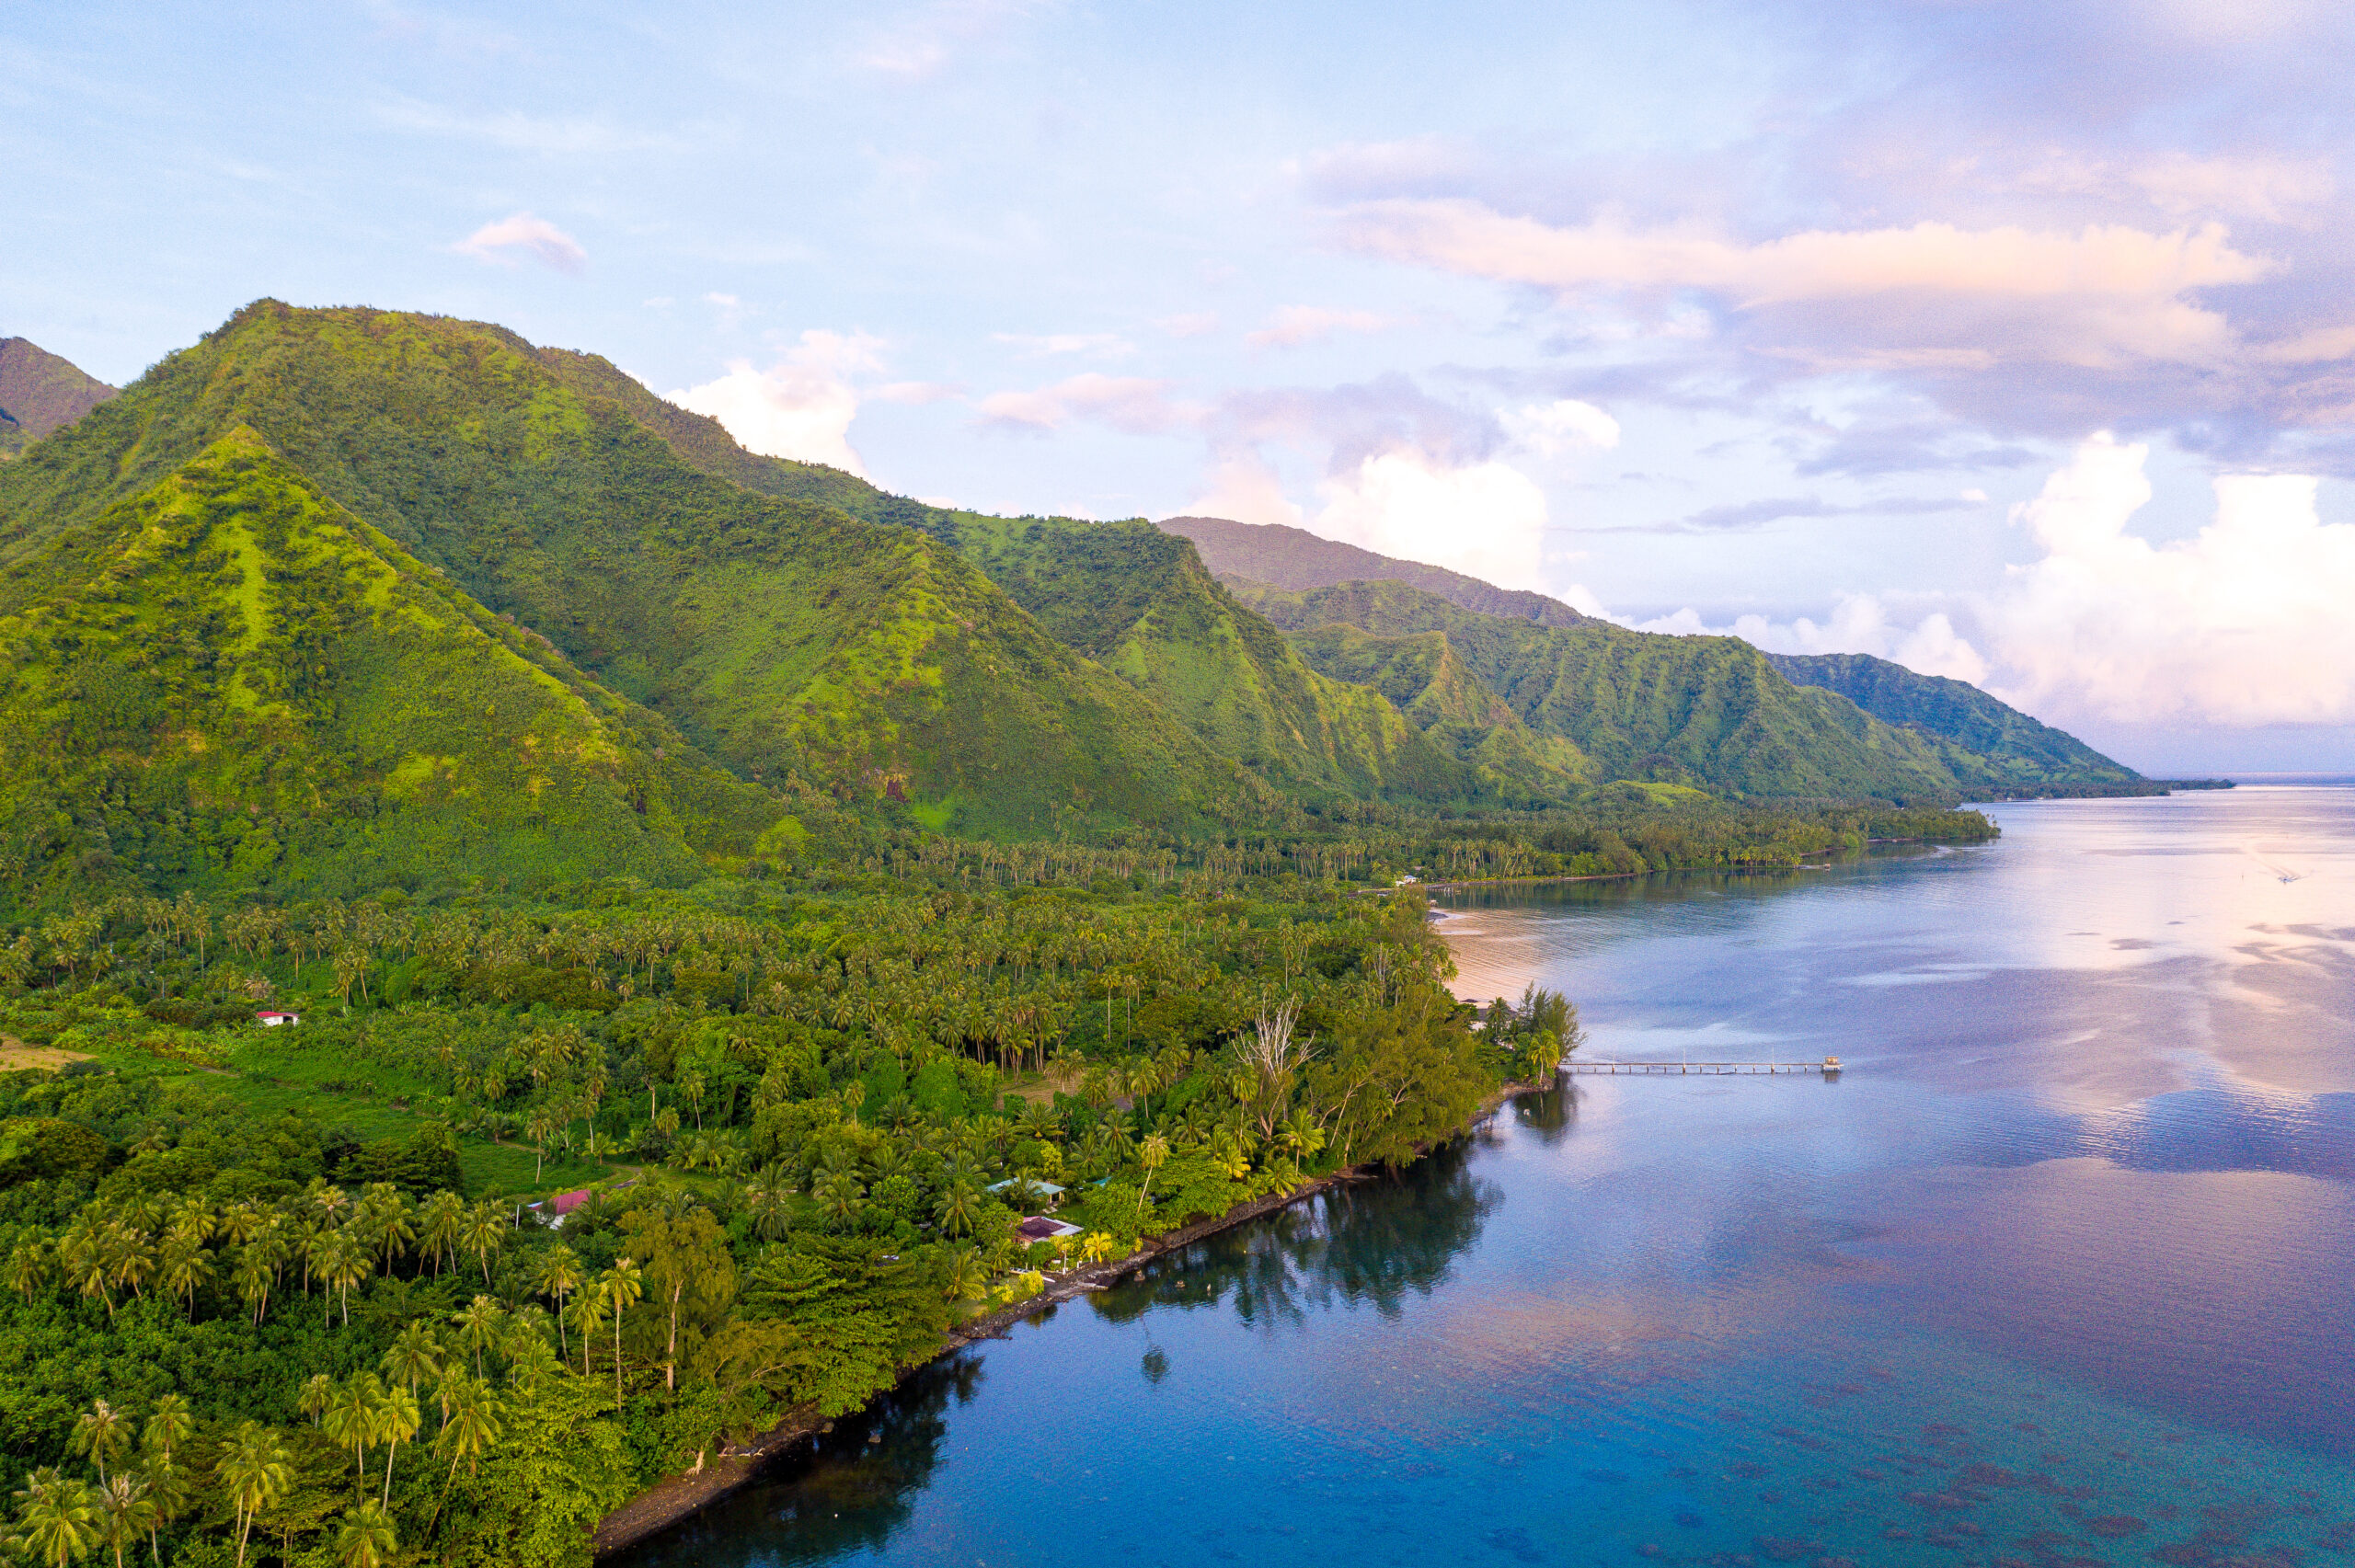 best drone shots taken by Ashley in Tahiti. Split show, on the left the tall volcanic walls of tahiti covered in many shades of green and on the right the incredible ocean with blues and pinks from the sunset reflecting off of the water